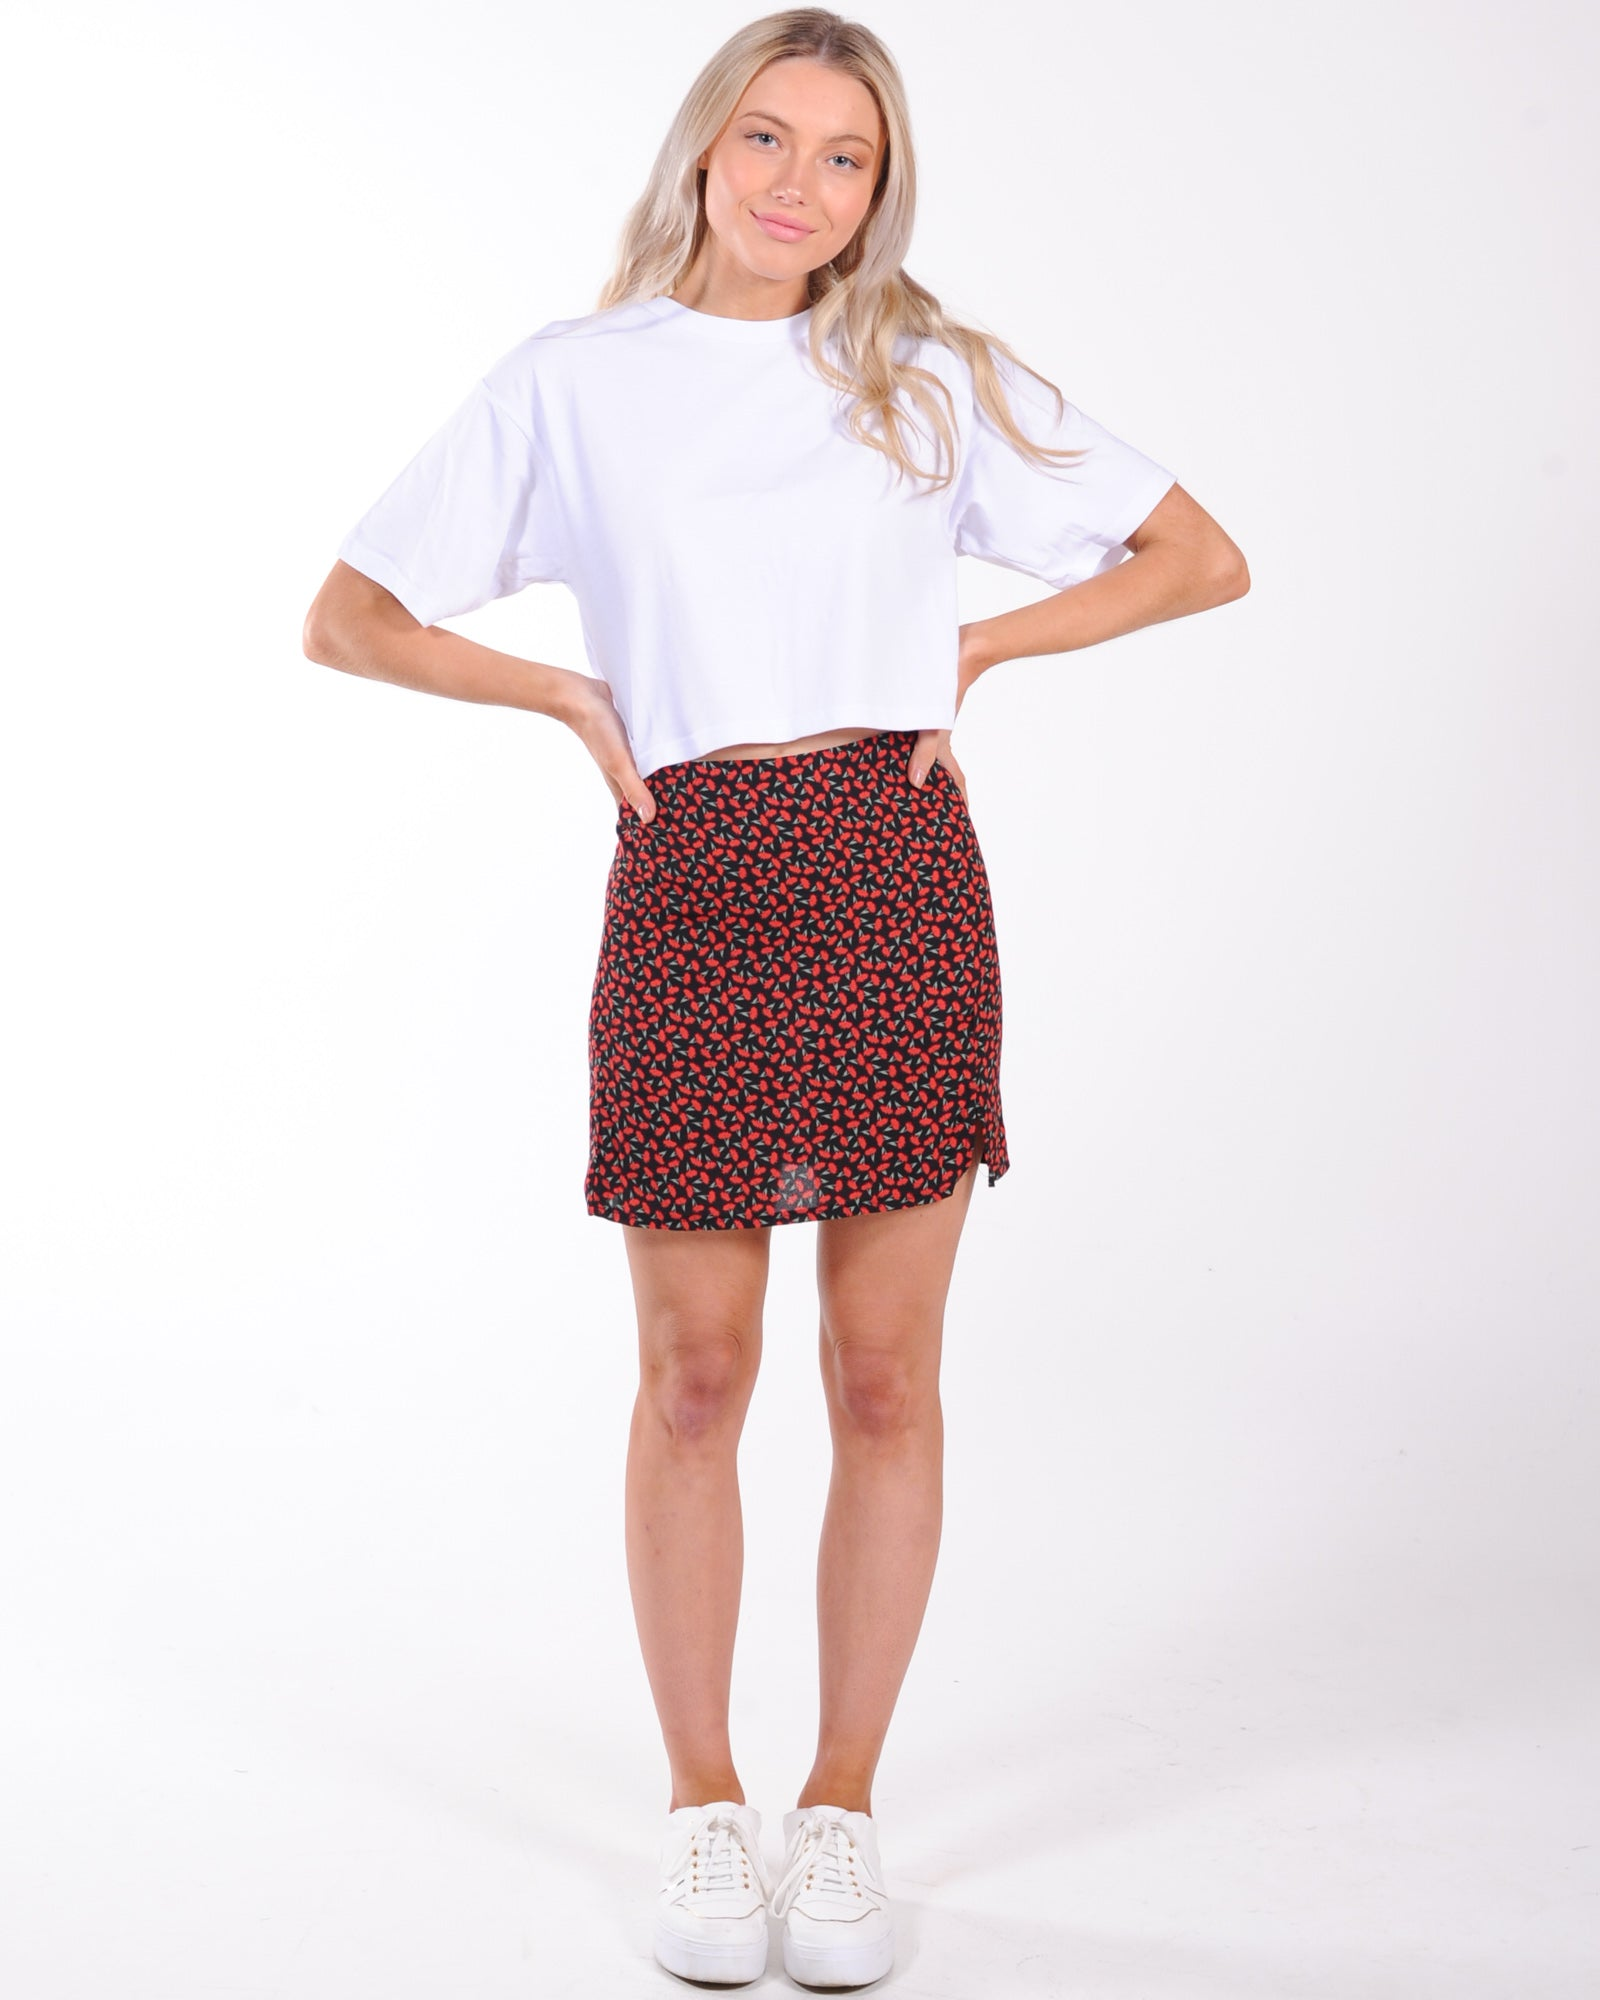 Free Time Floral Skirt - Red Floral